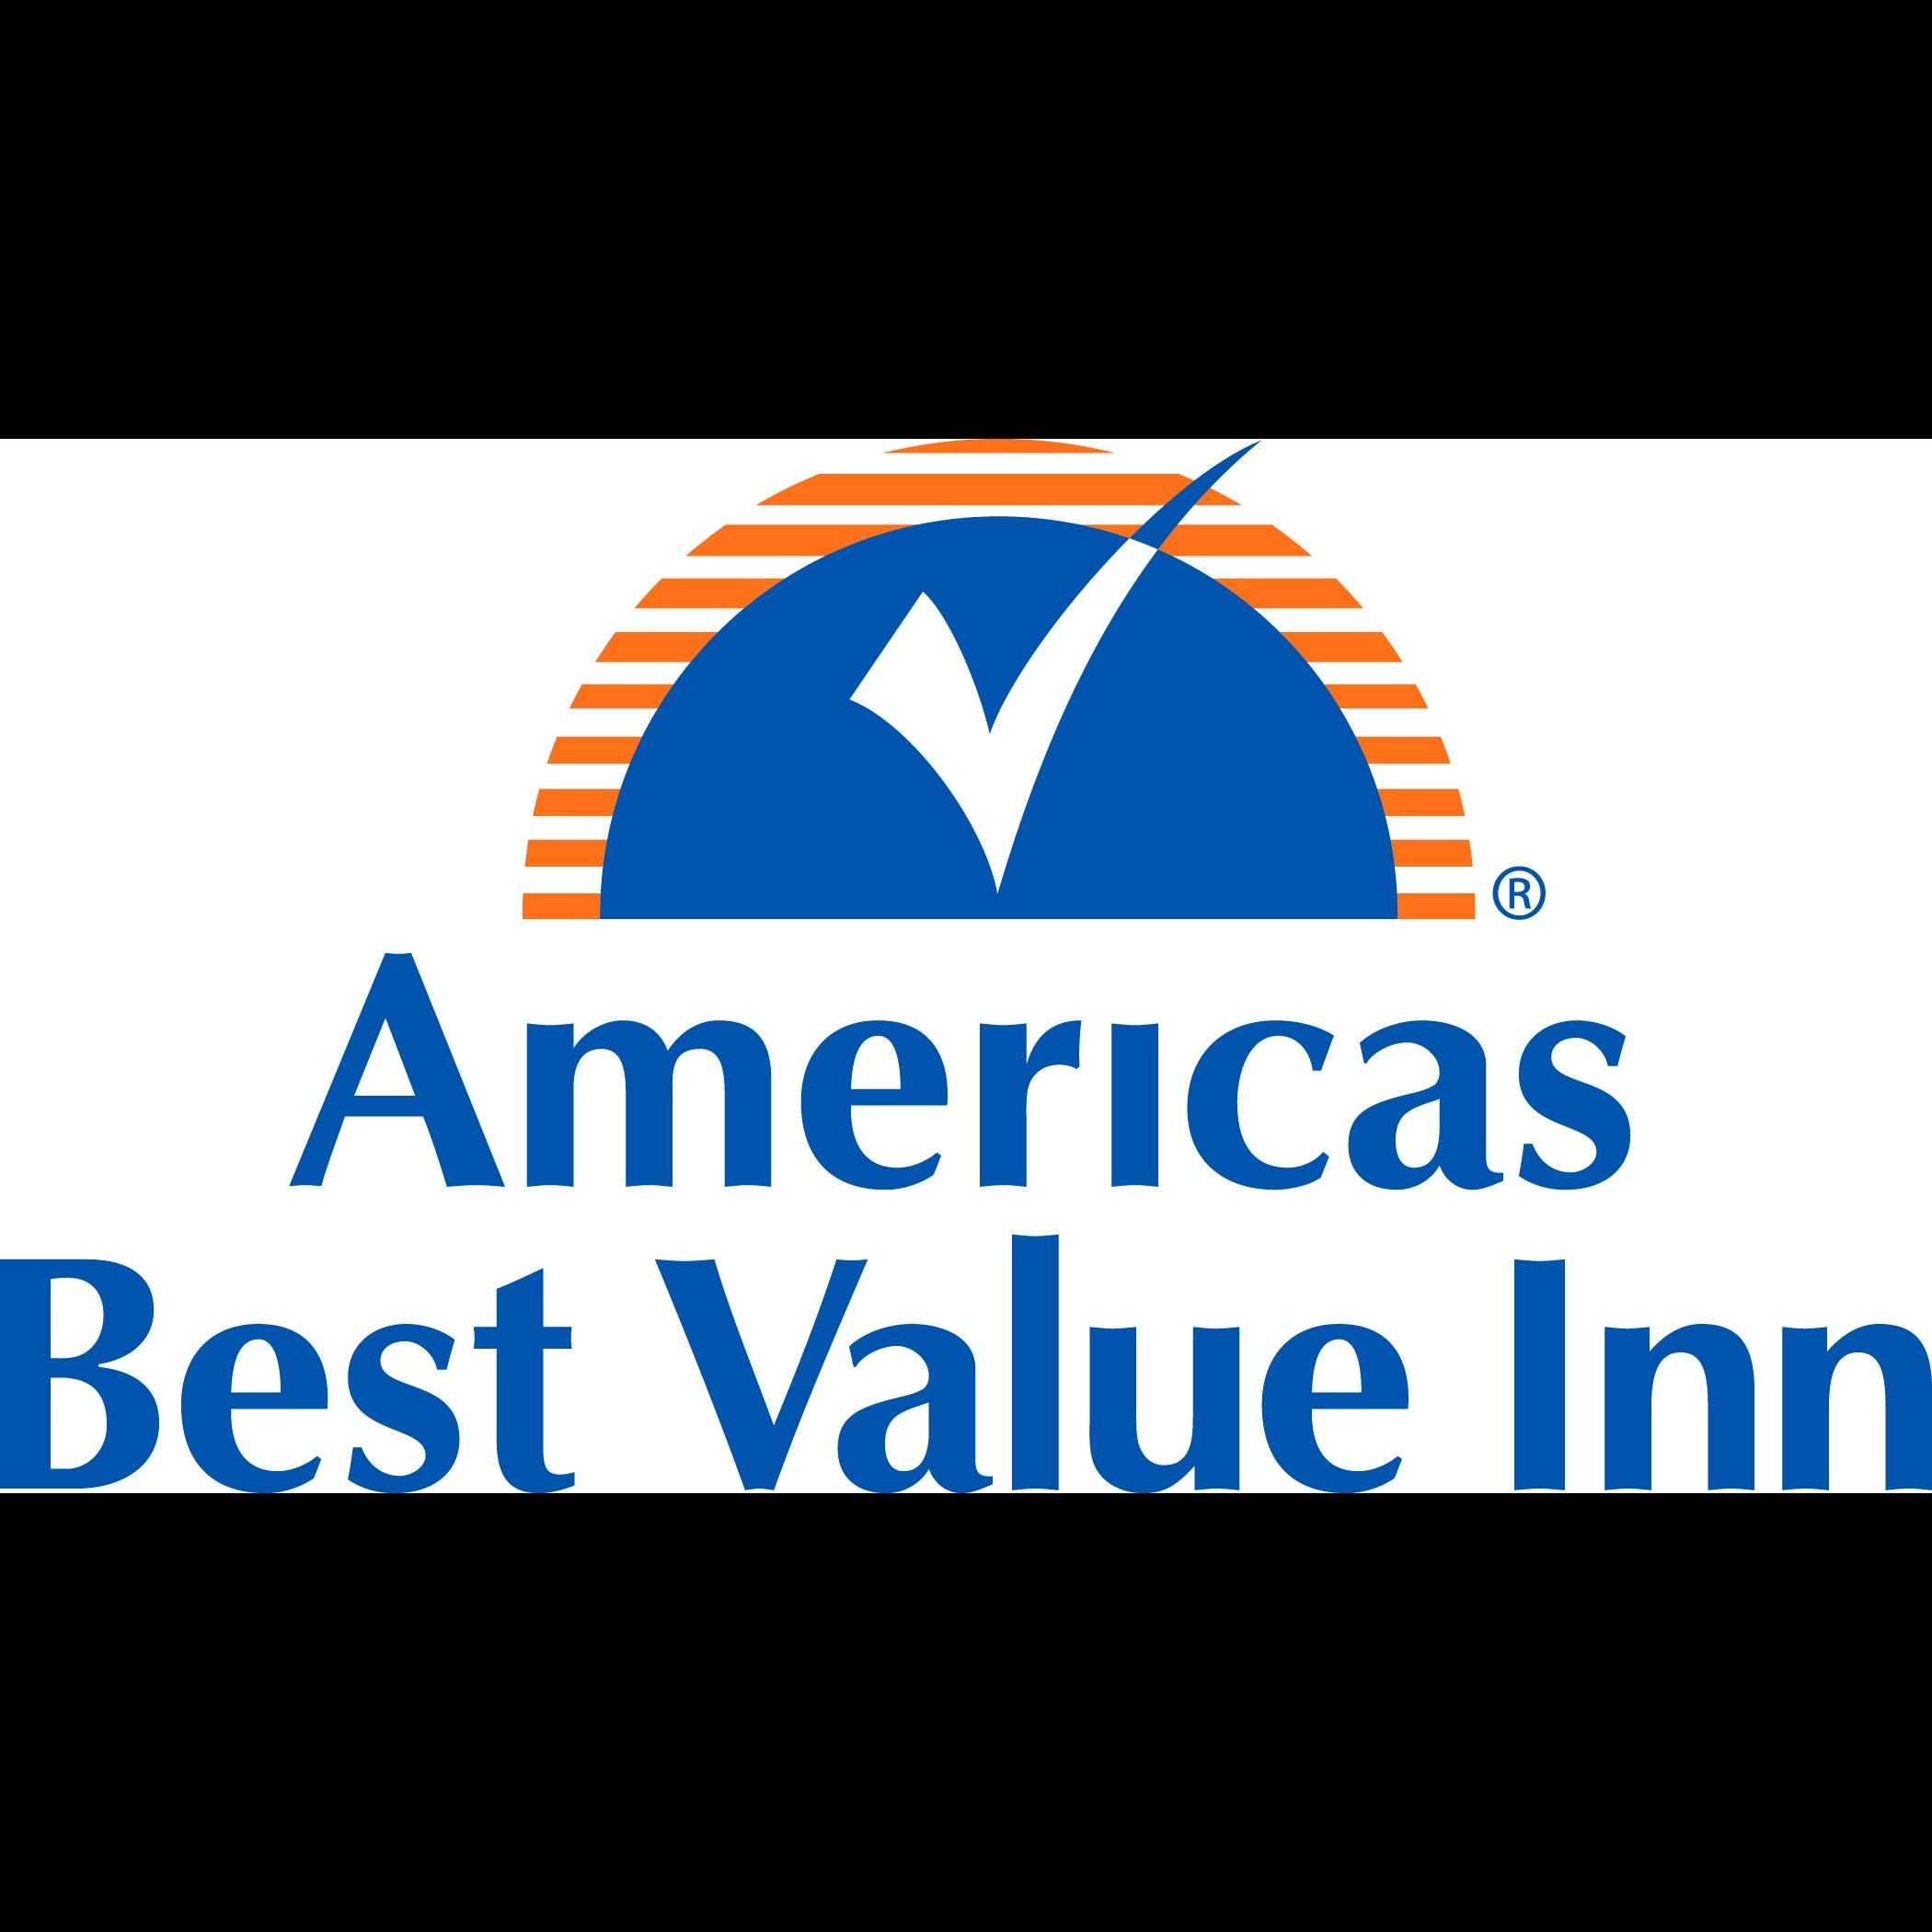 Americas Best Value Inn Rawlins  Rawlins Wyoming  Wy